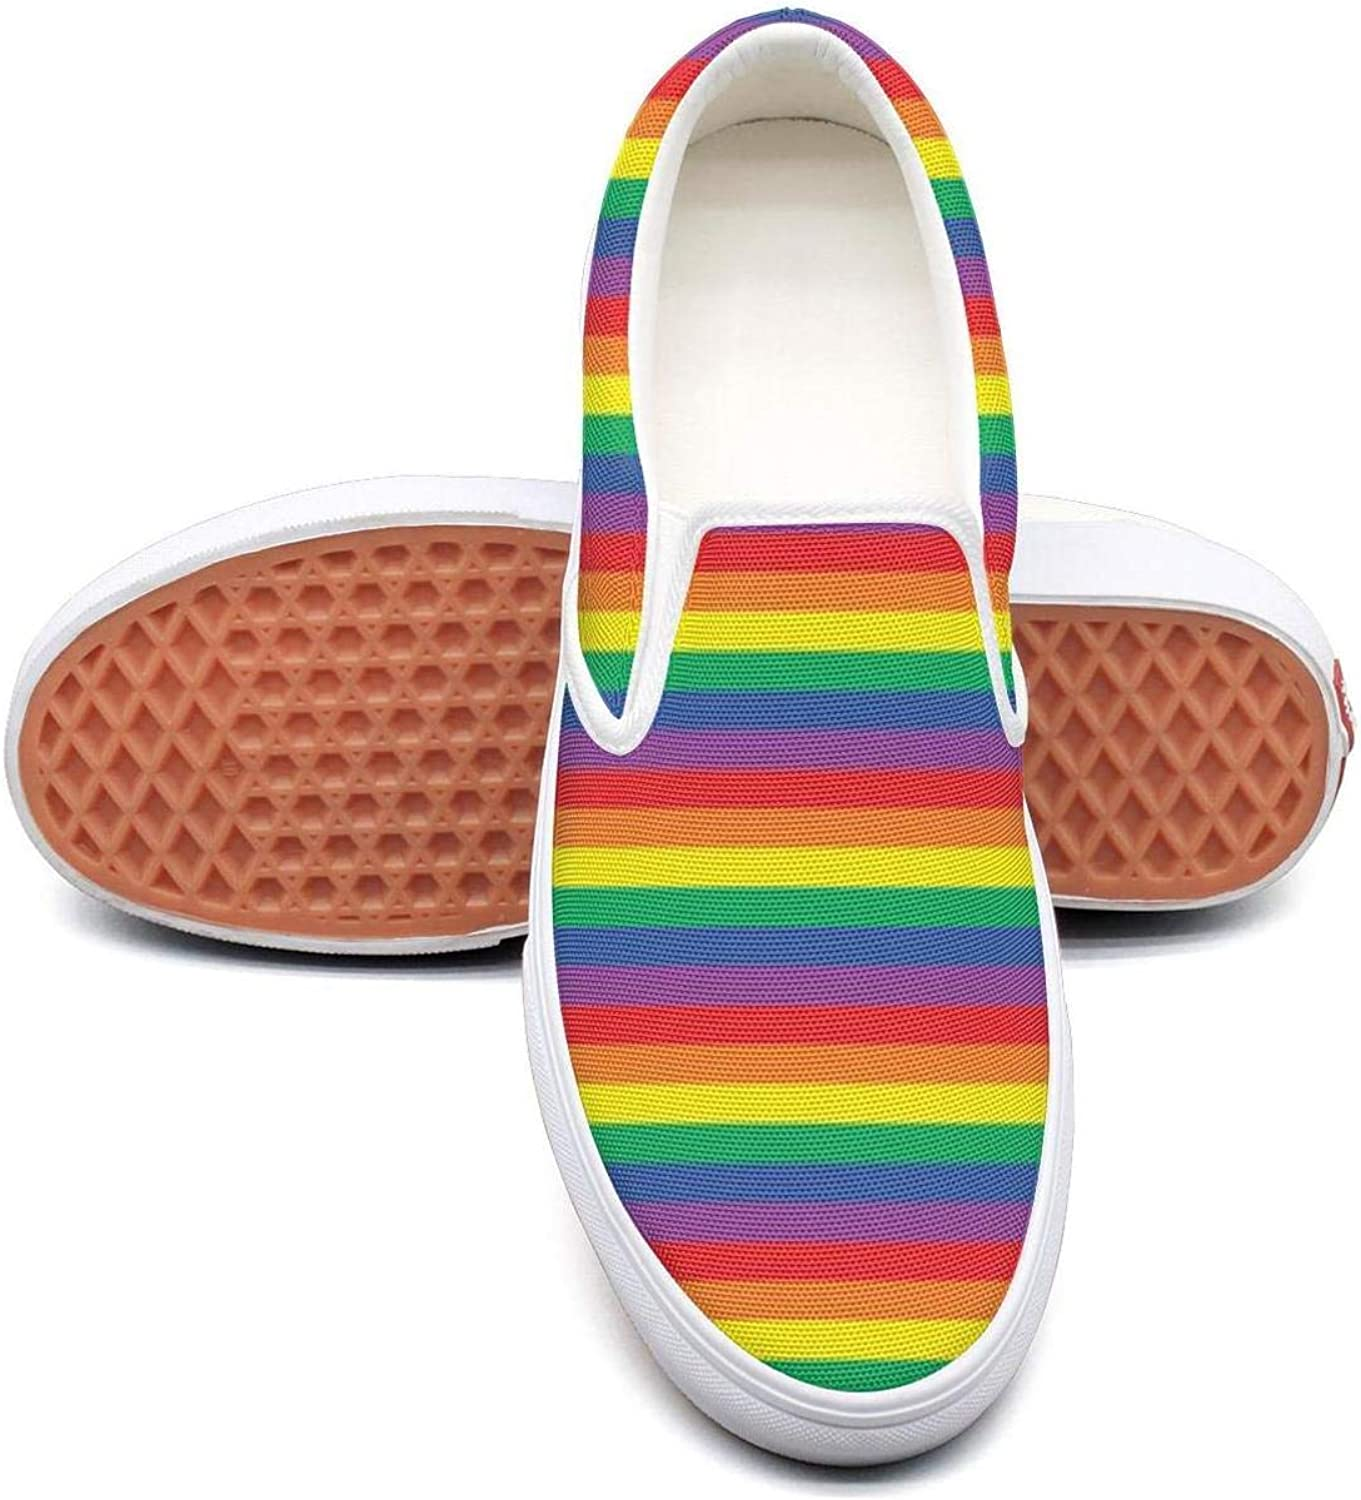 Refyds-es Beautiful Rainbow Stripes Women's Fashion Slip On Low Top Lightweight Canvas Sneakers shoes